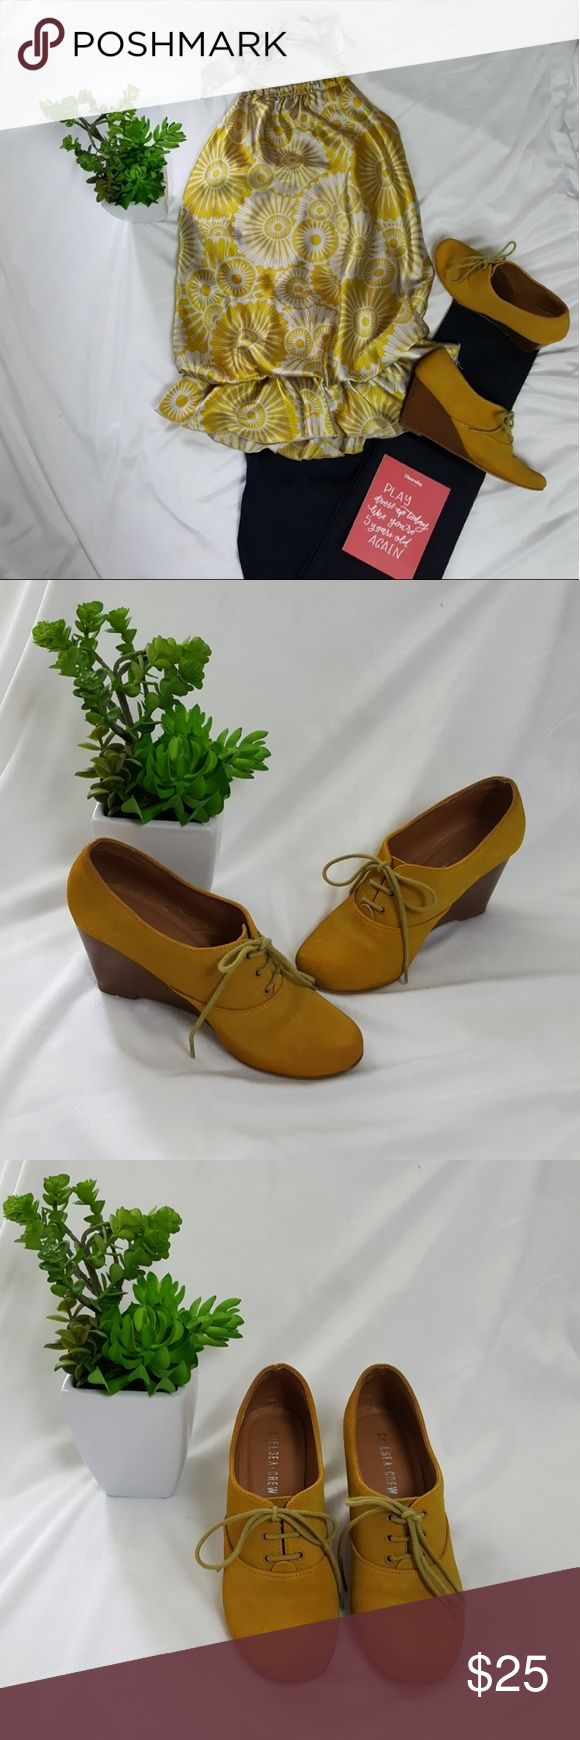 Chelsea Crew Oxford wedges Super cute mustard color wedges. These beauties are in great condition considering how much they are loved! There are some scuffs on the heels as shown in the pictures and some discoloration around the edges but barely noticeable. The wedge height is 3'. These were purchased from Modcloth. Modcloth Shoes Wedges